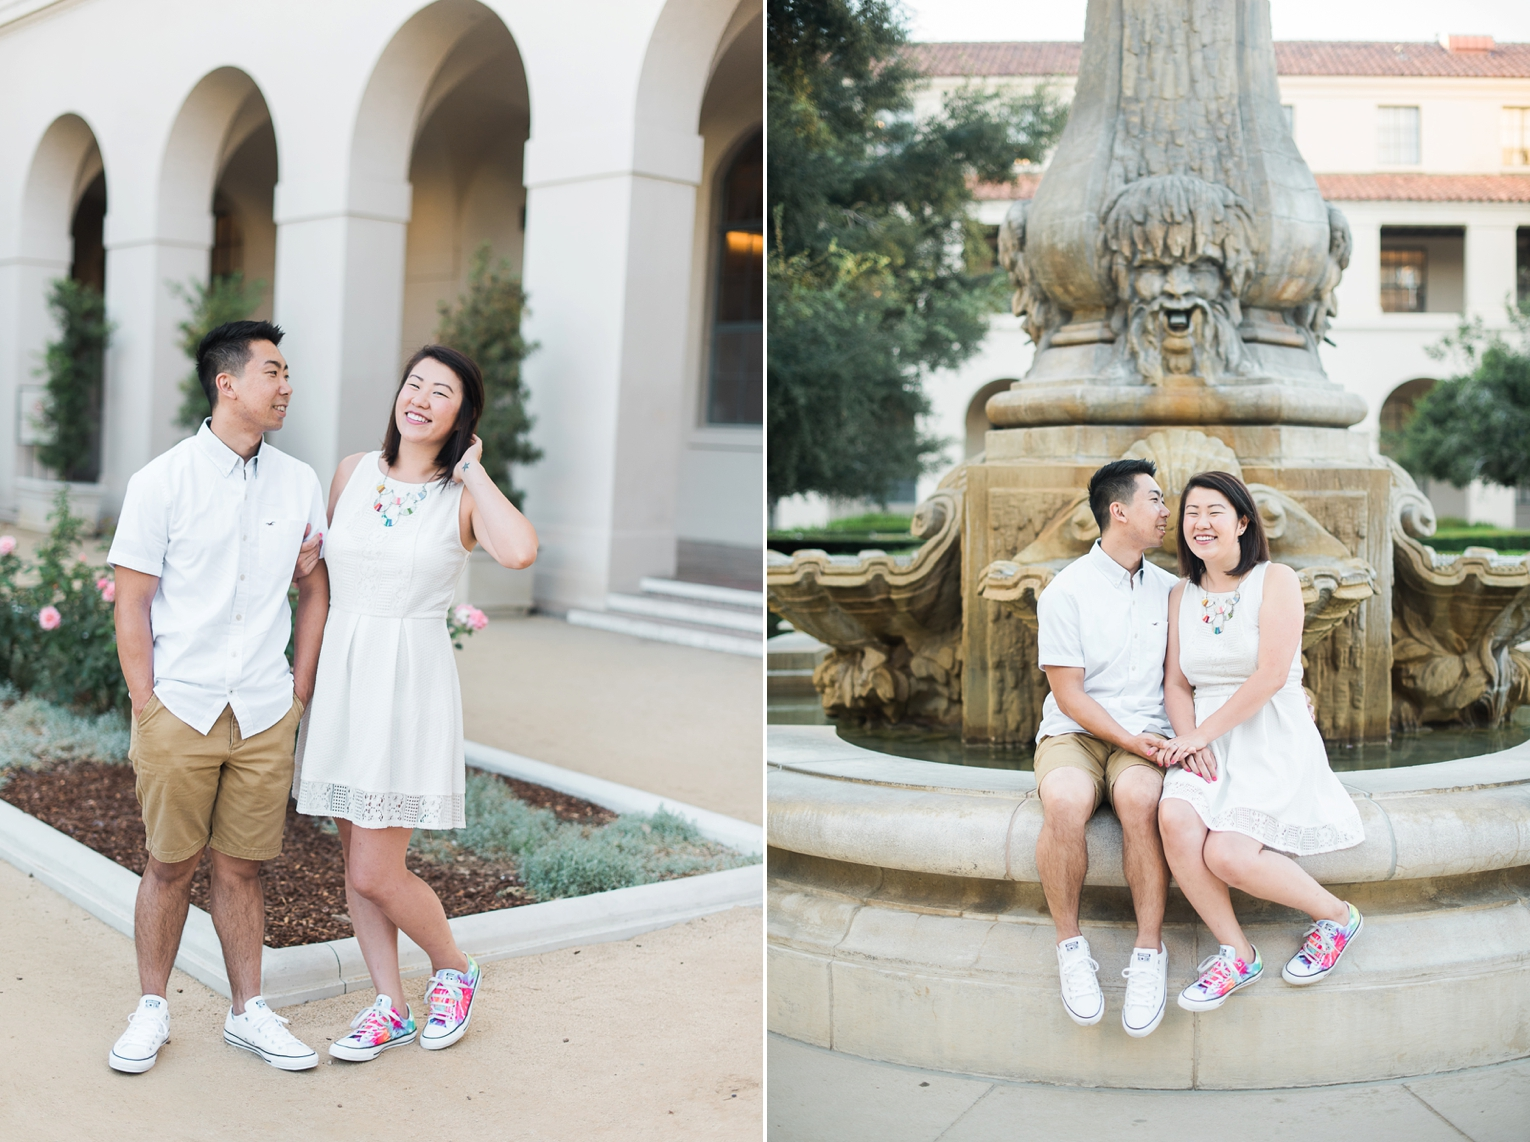 Old town Pasadena Engagement Photos | Brandi Welles Photographer_0004